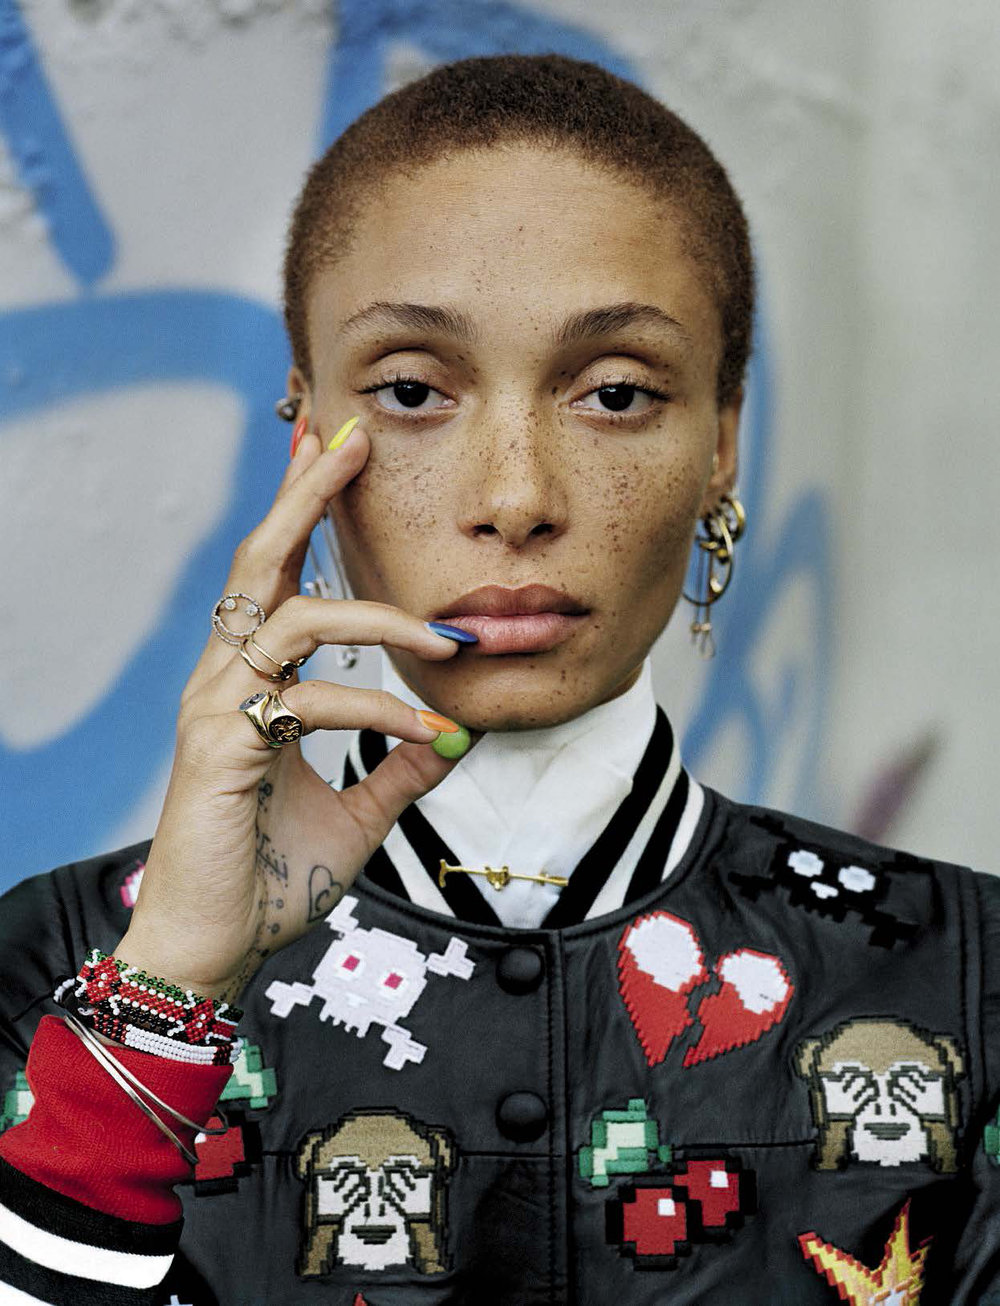 adwoa-aboah-by-tim-walker-for-vogue-italia-december-2015-2.jpg